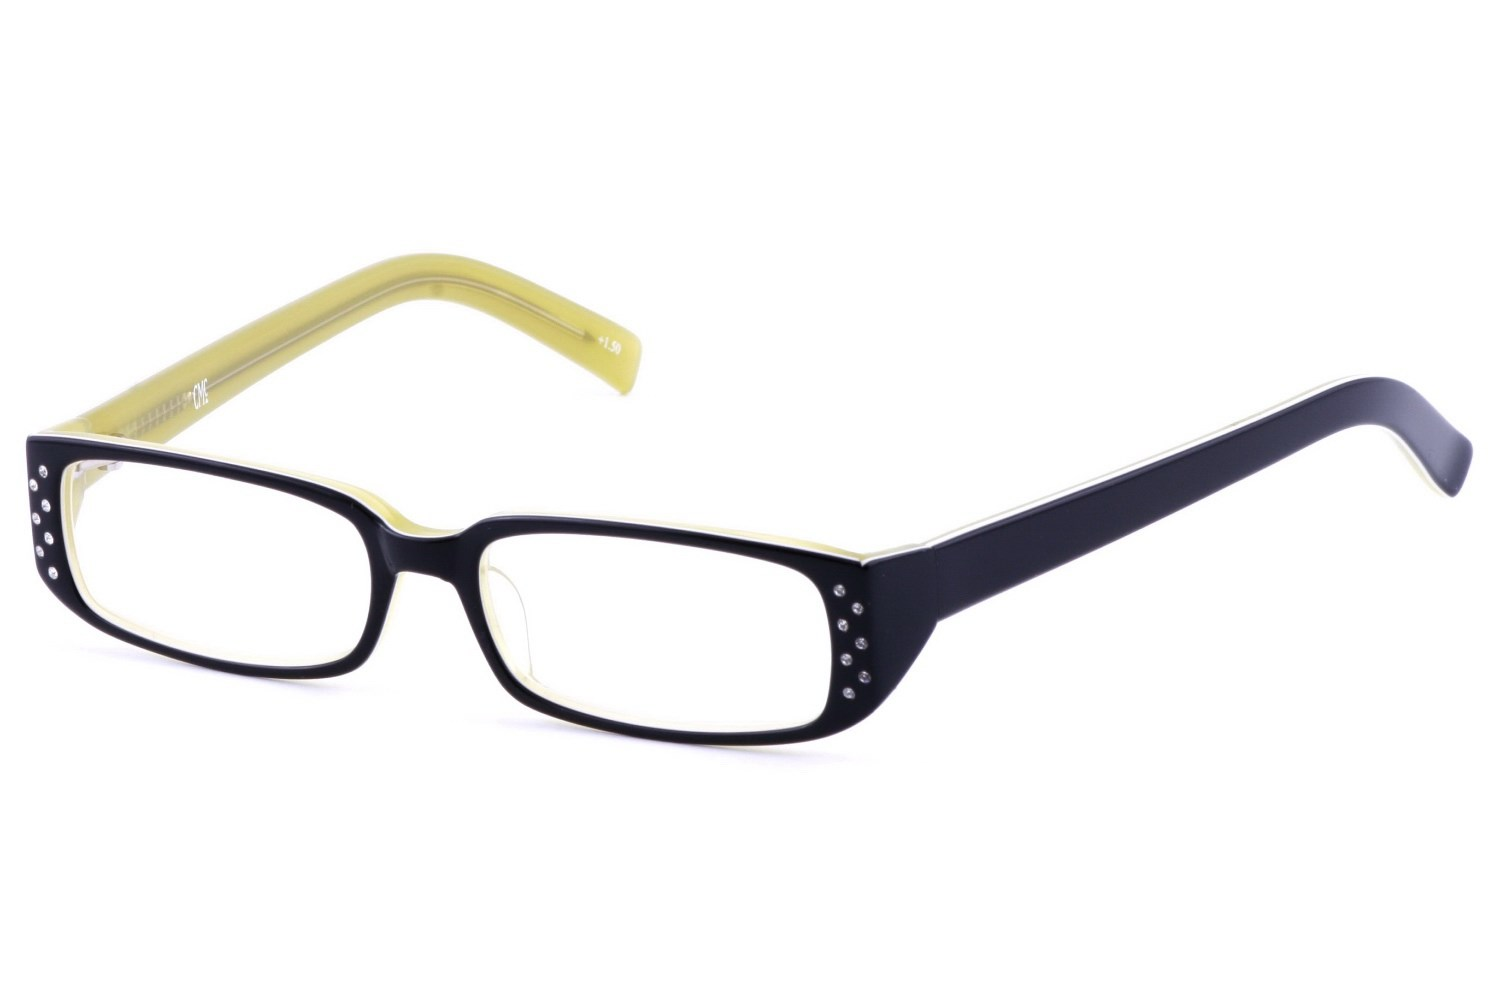 Corinne McCormack Sherry Jet Yellow Rhinestone Reading Glasses